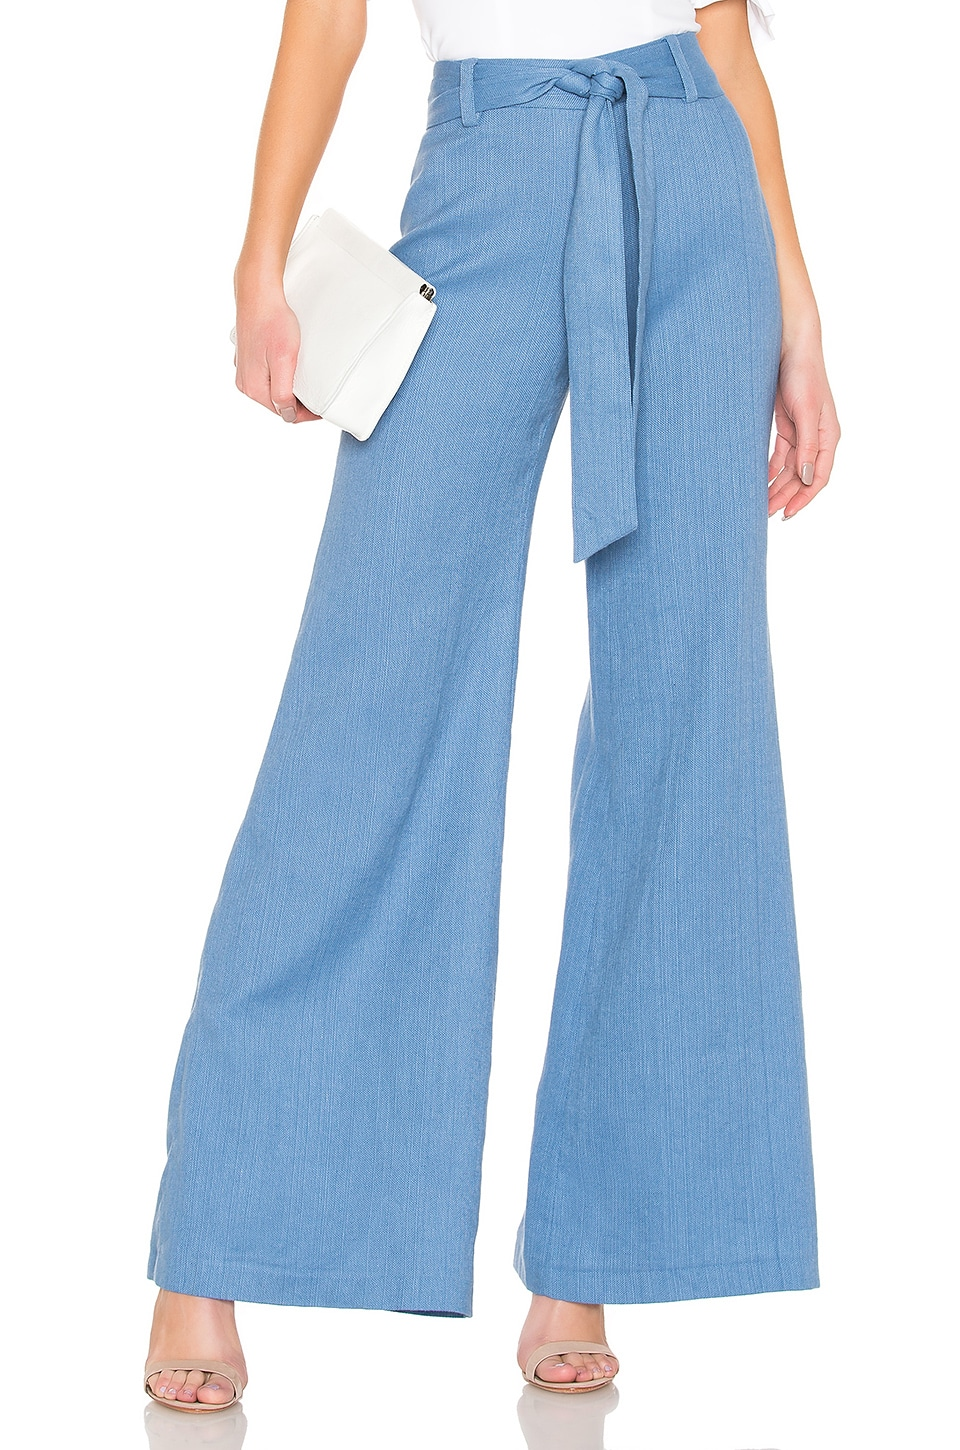 Alexis Alenka Pant in Shell Blue Linen